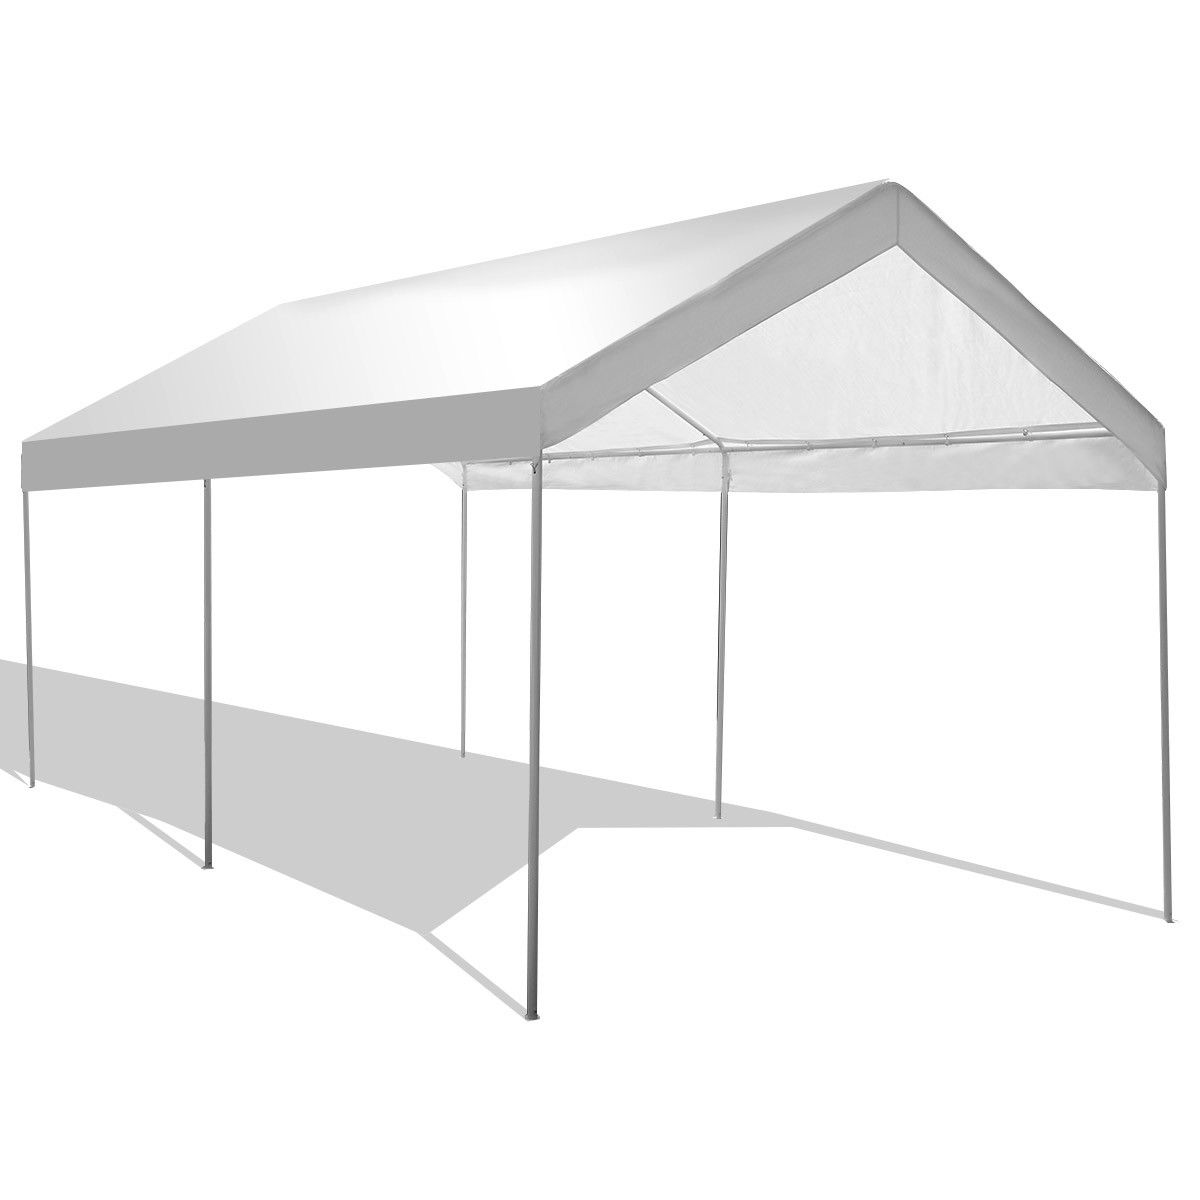 Gymax Steel Frame Party Tent Canopy Shelter Portable Car Carport Garage Cover - Walmart.com  sc 1 st  Walmart & Gymax Steel Frame Party Tent Canopy Shelter Portable Car Carport ...